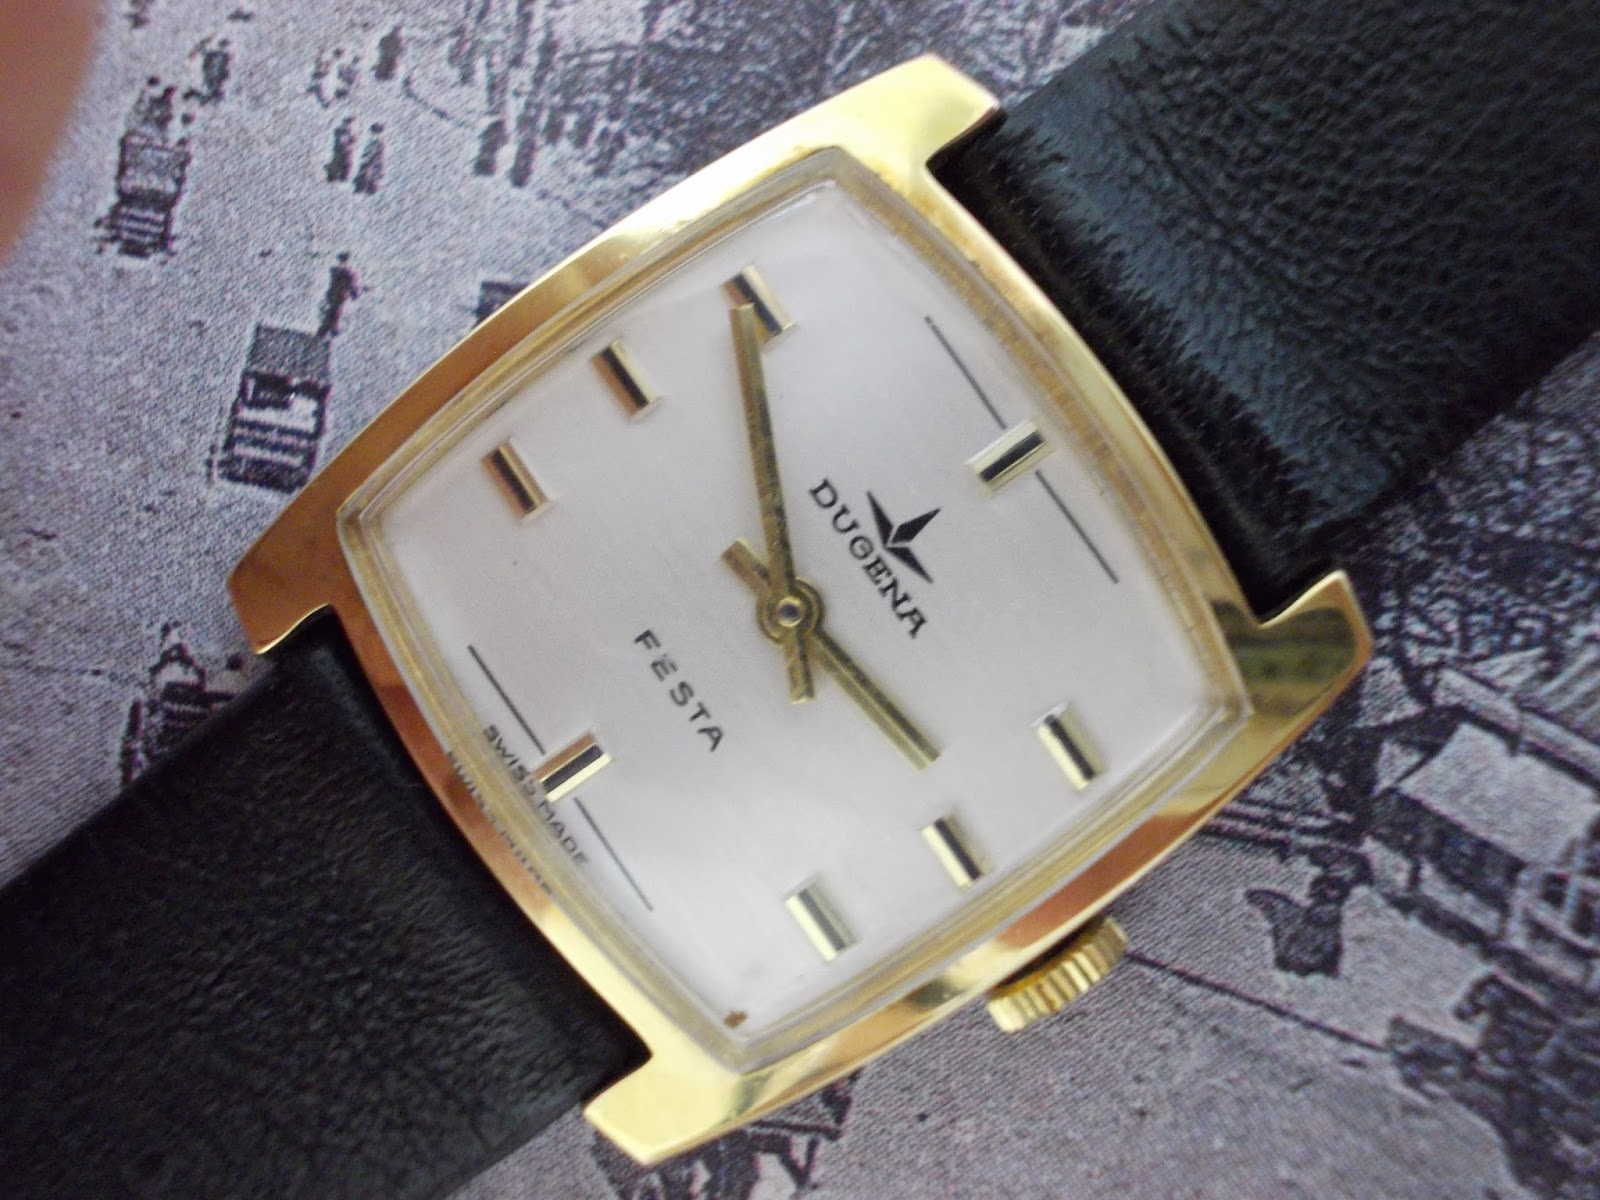 vintage watches: Dugena lady RM350